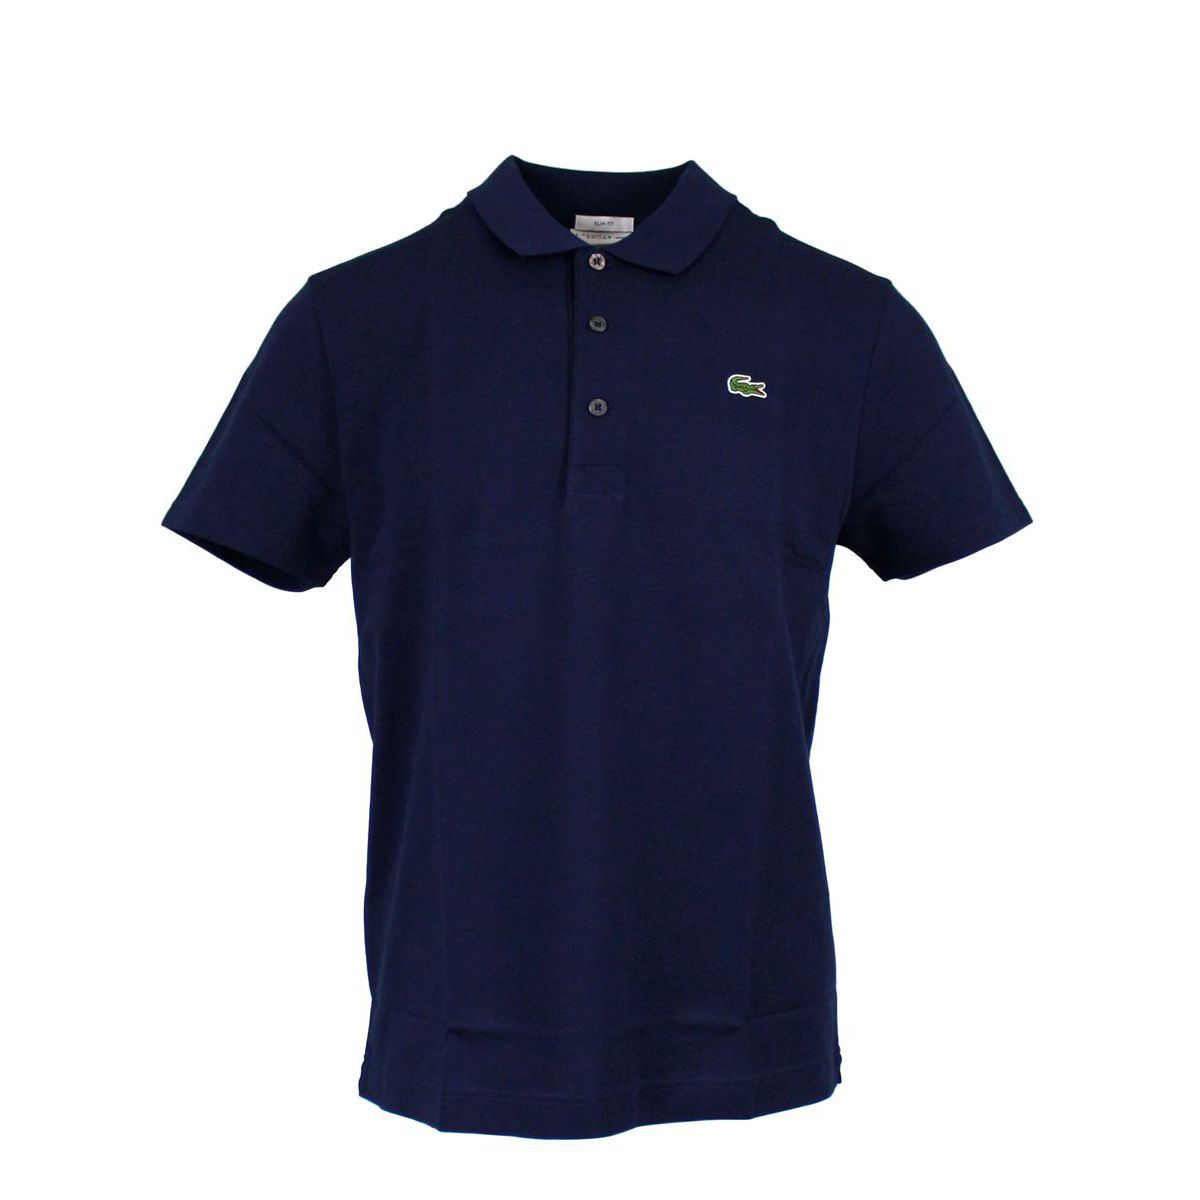 3-button sports slim fit polo shirt Navy Lacoste